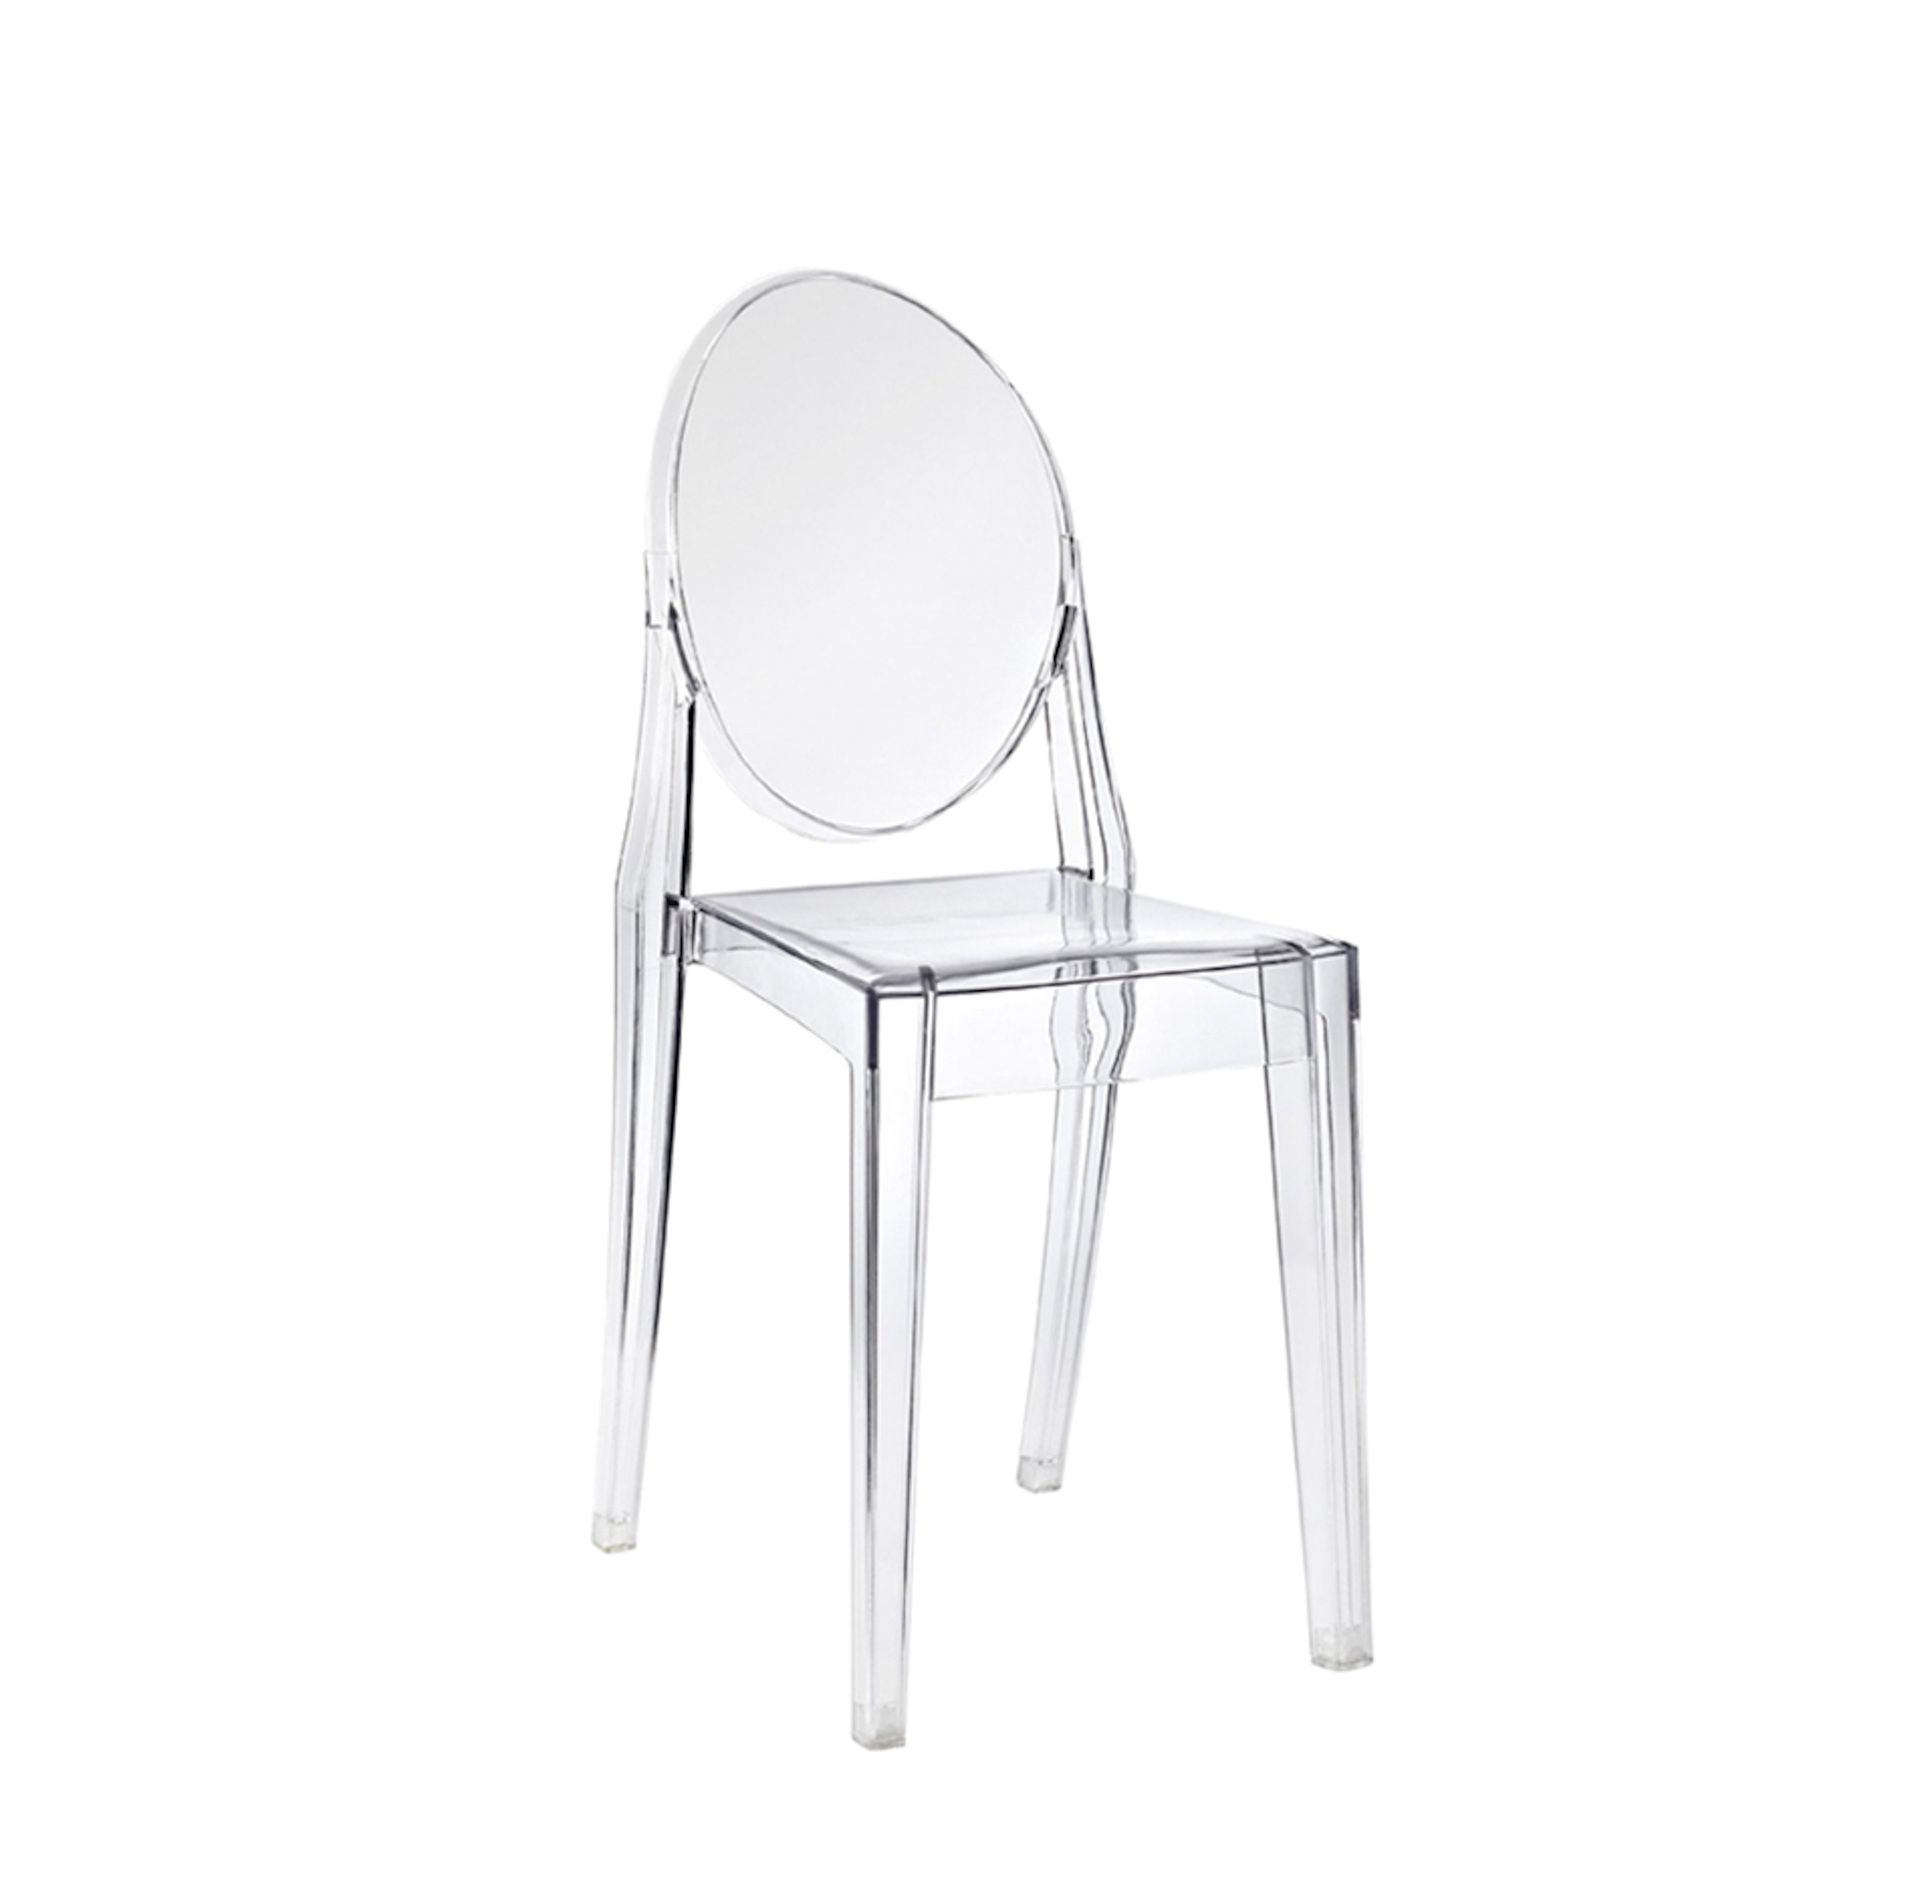 armless ghost chair clear google search van pinterest ghost